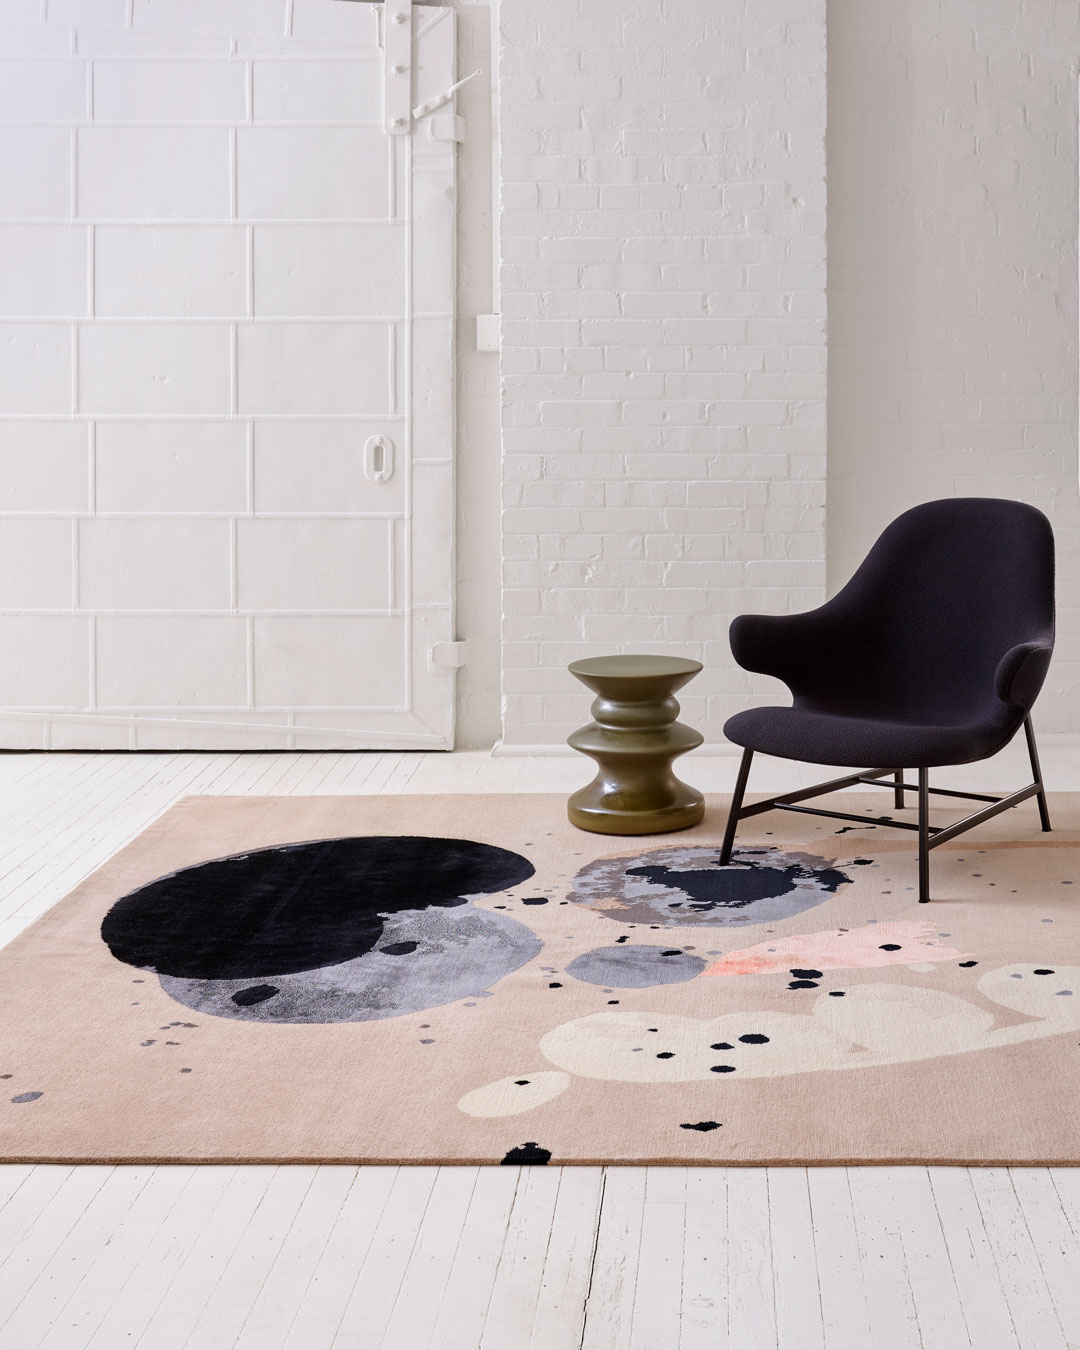 Living room image of painterly Seed Pod rug by Louise Olsen in grey colour